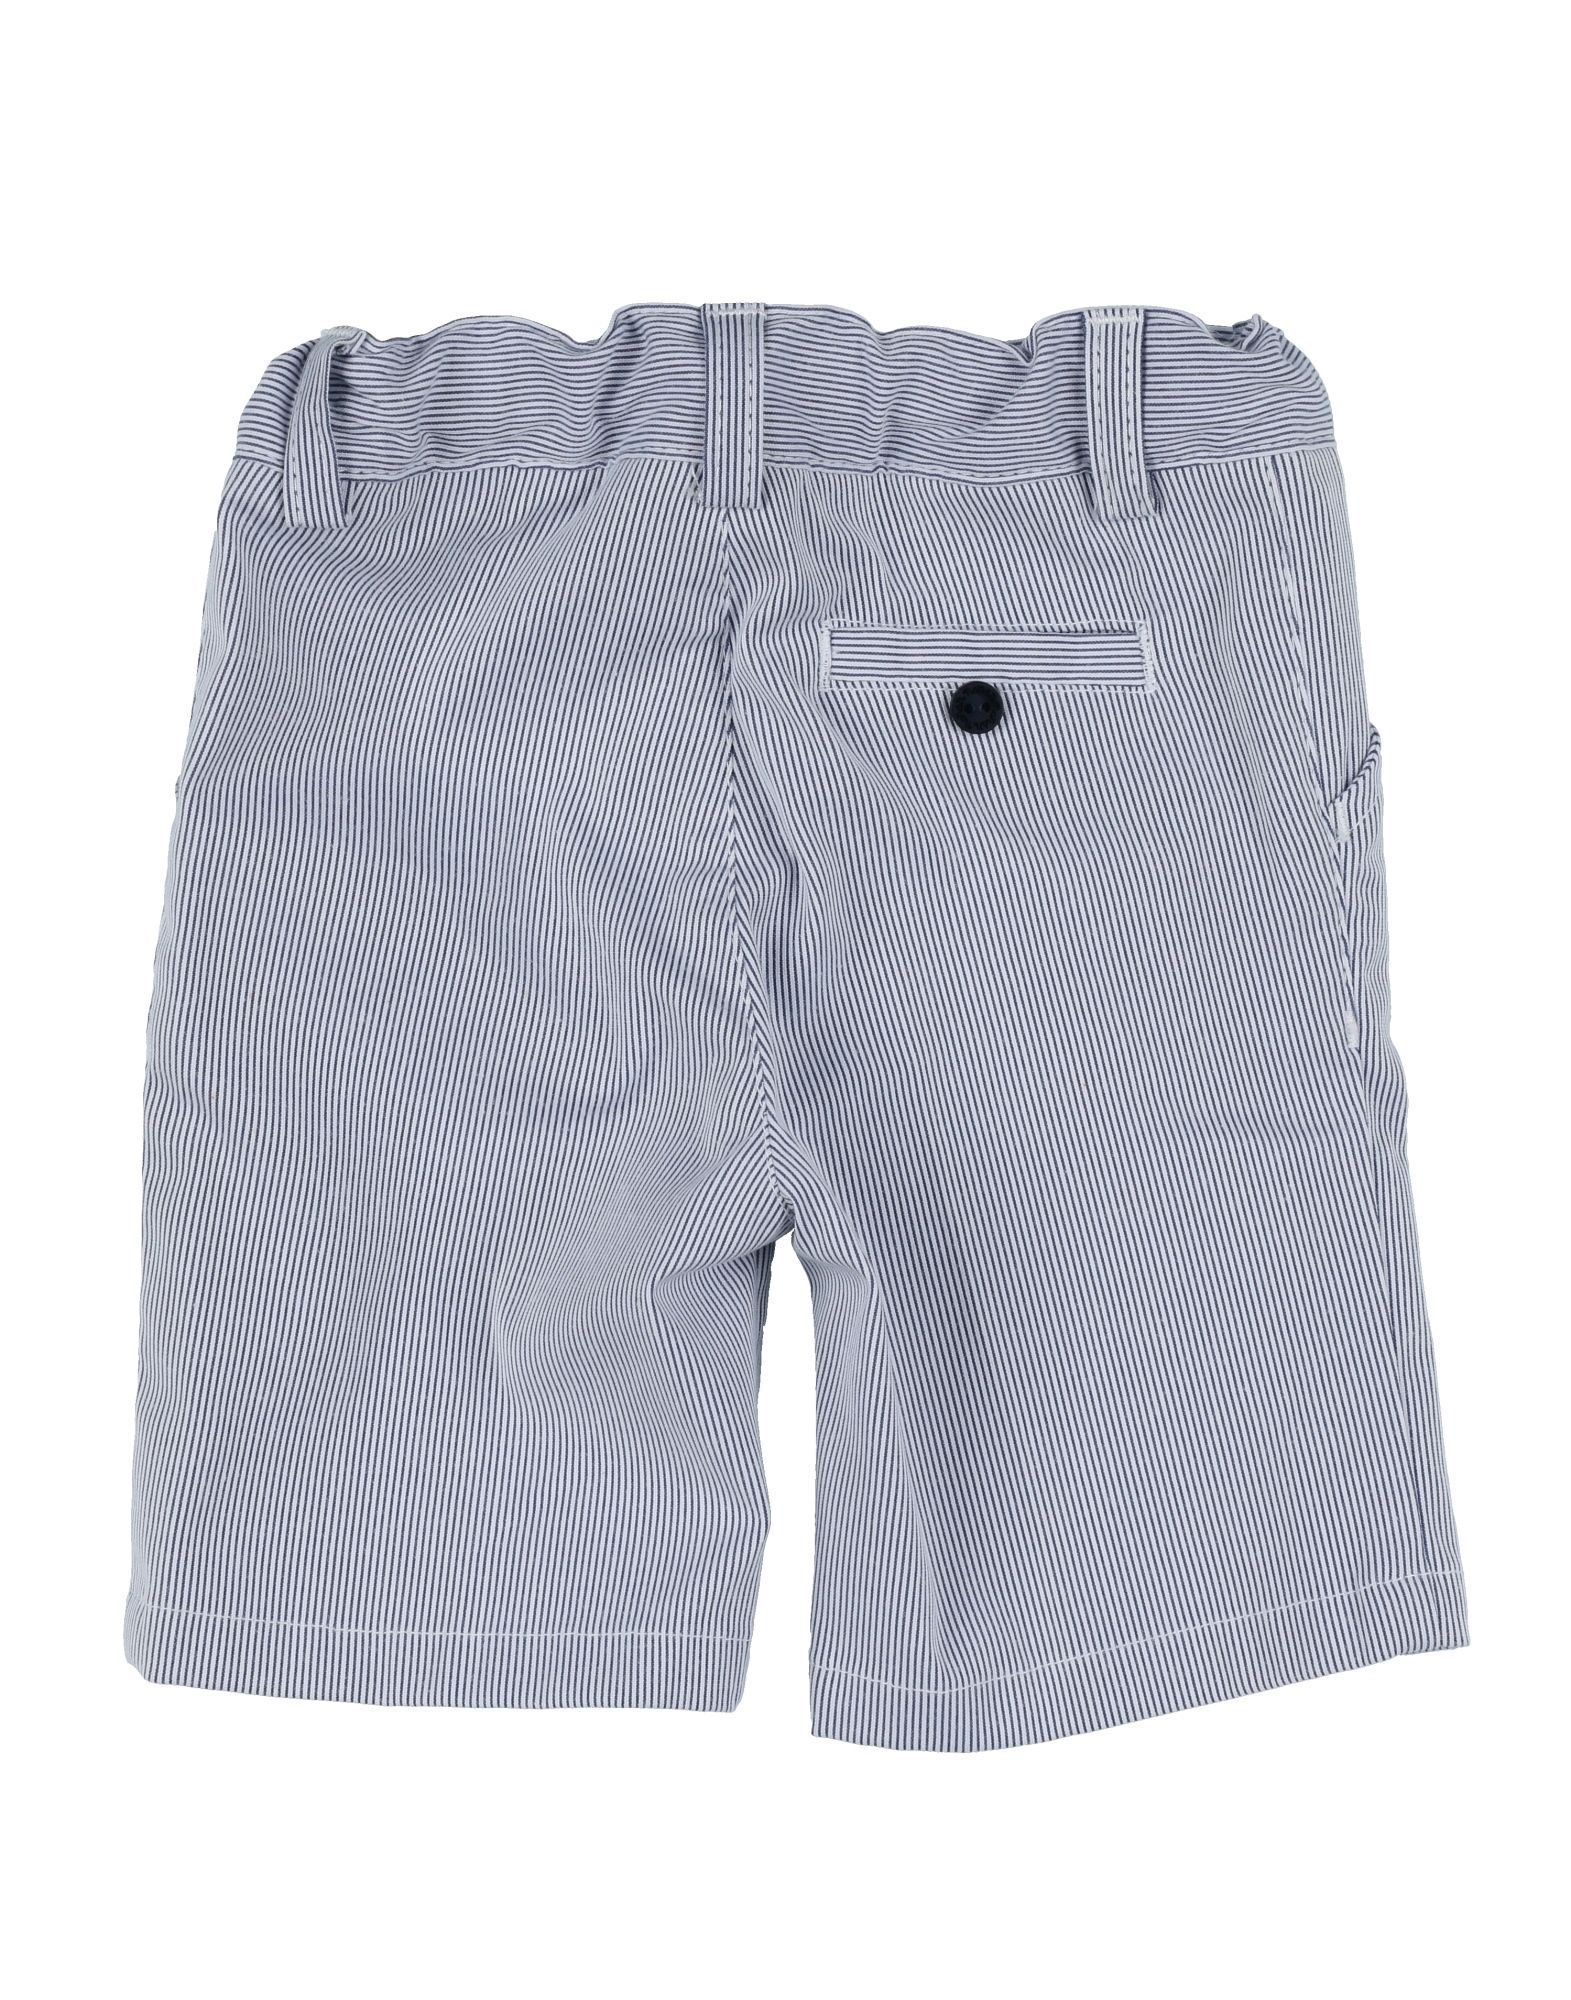 Nan�n Blue Boy Cotton Shorts